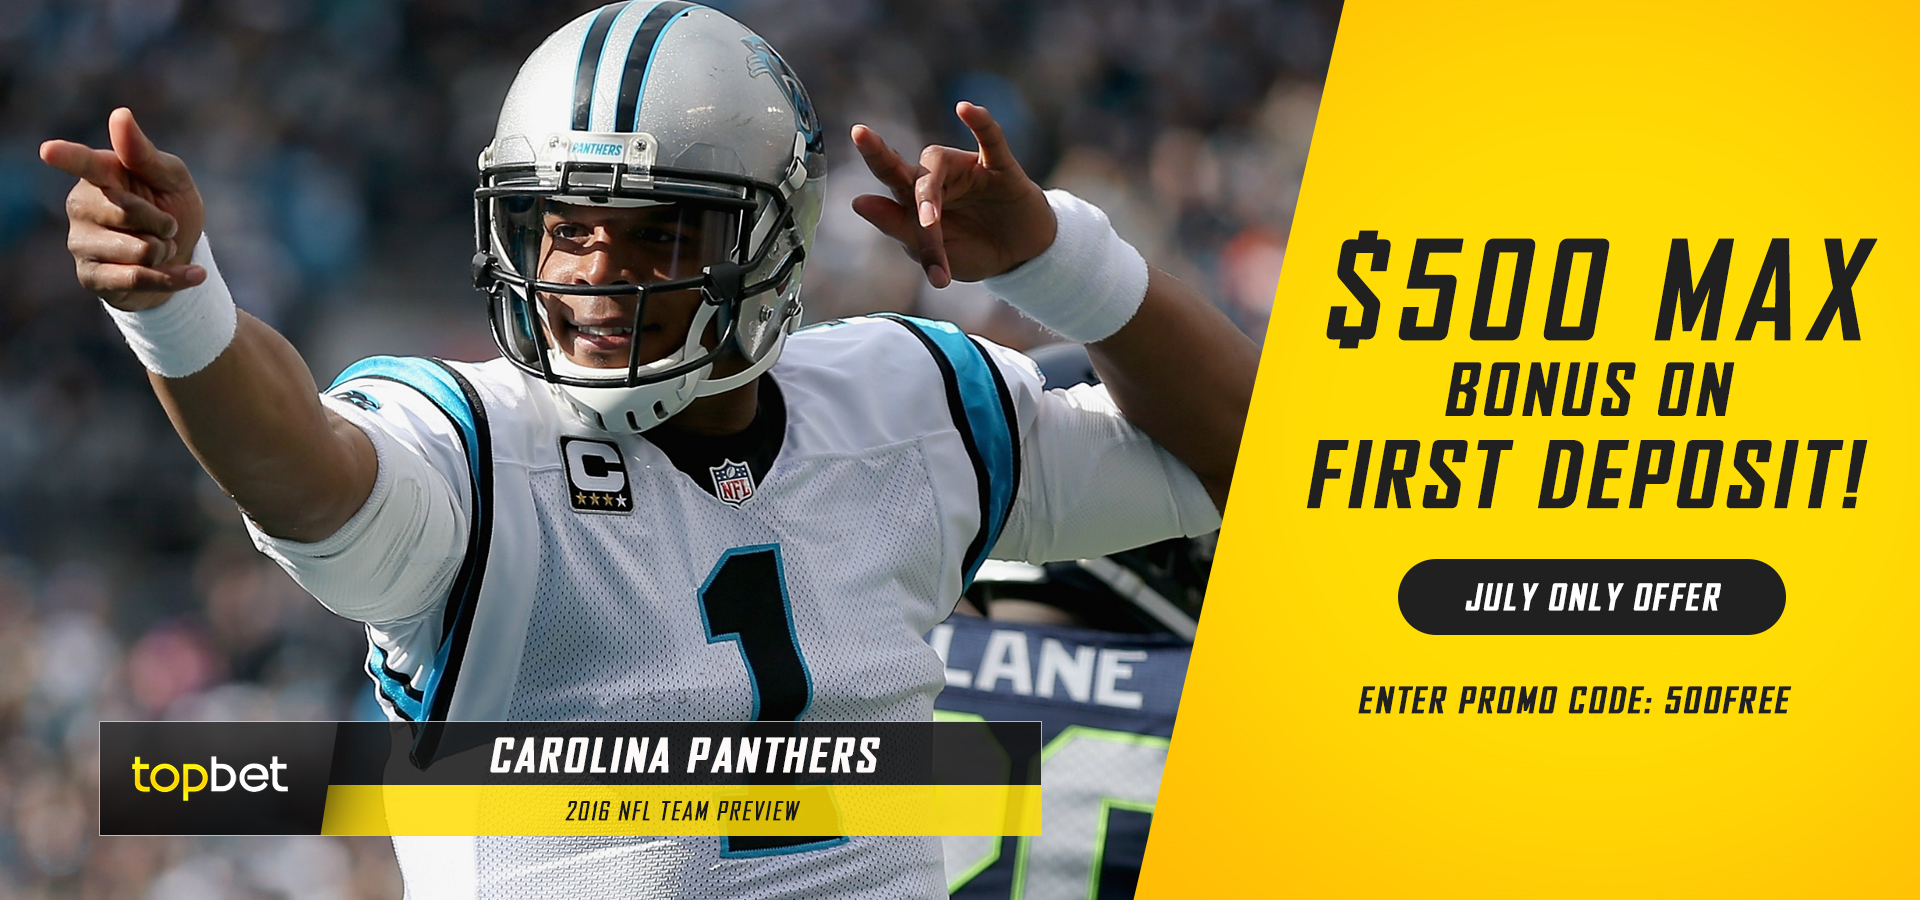 is topbet sportsbook legit panthers game online